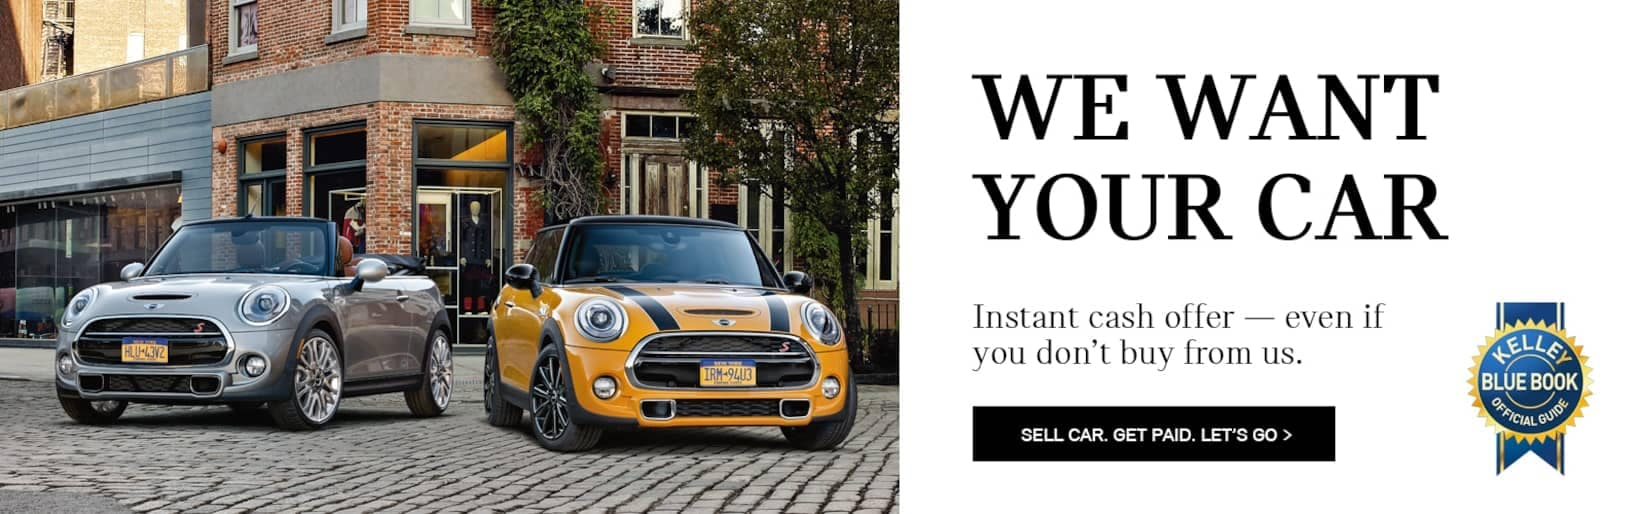 We-Want-Your-Car--MINI-Banner_